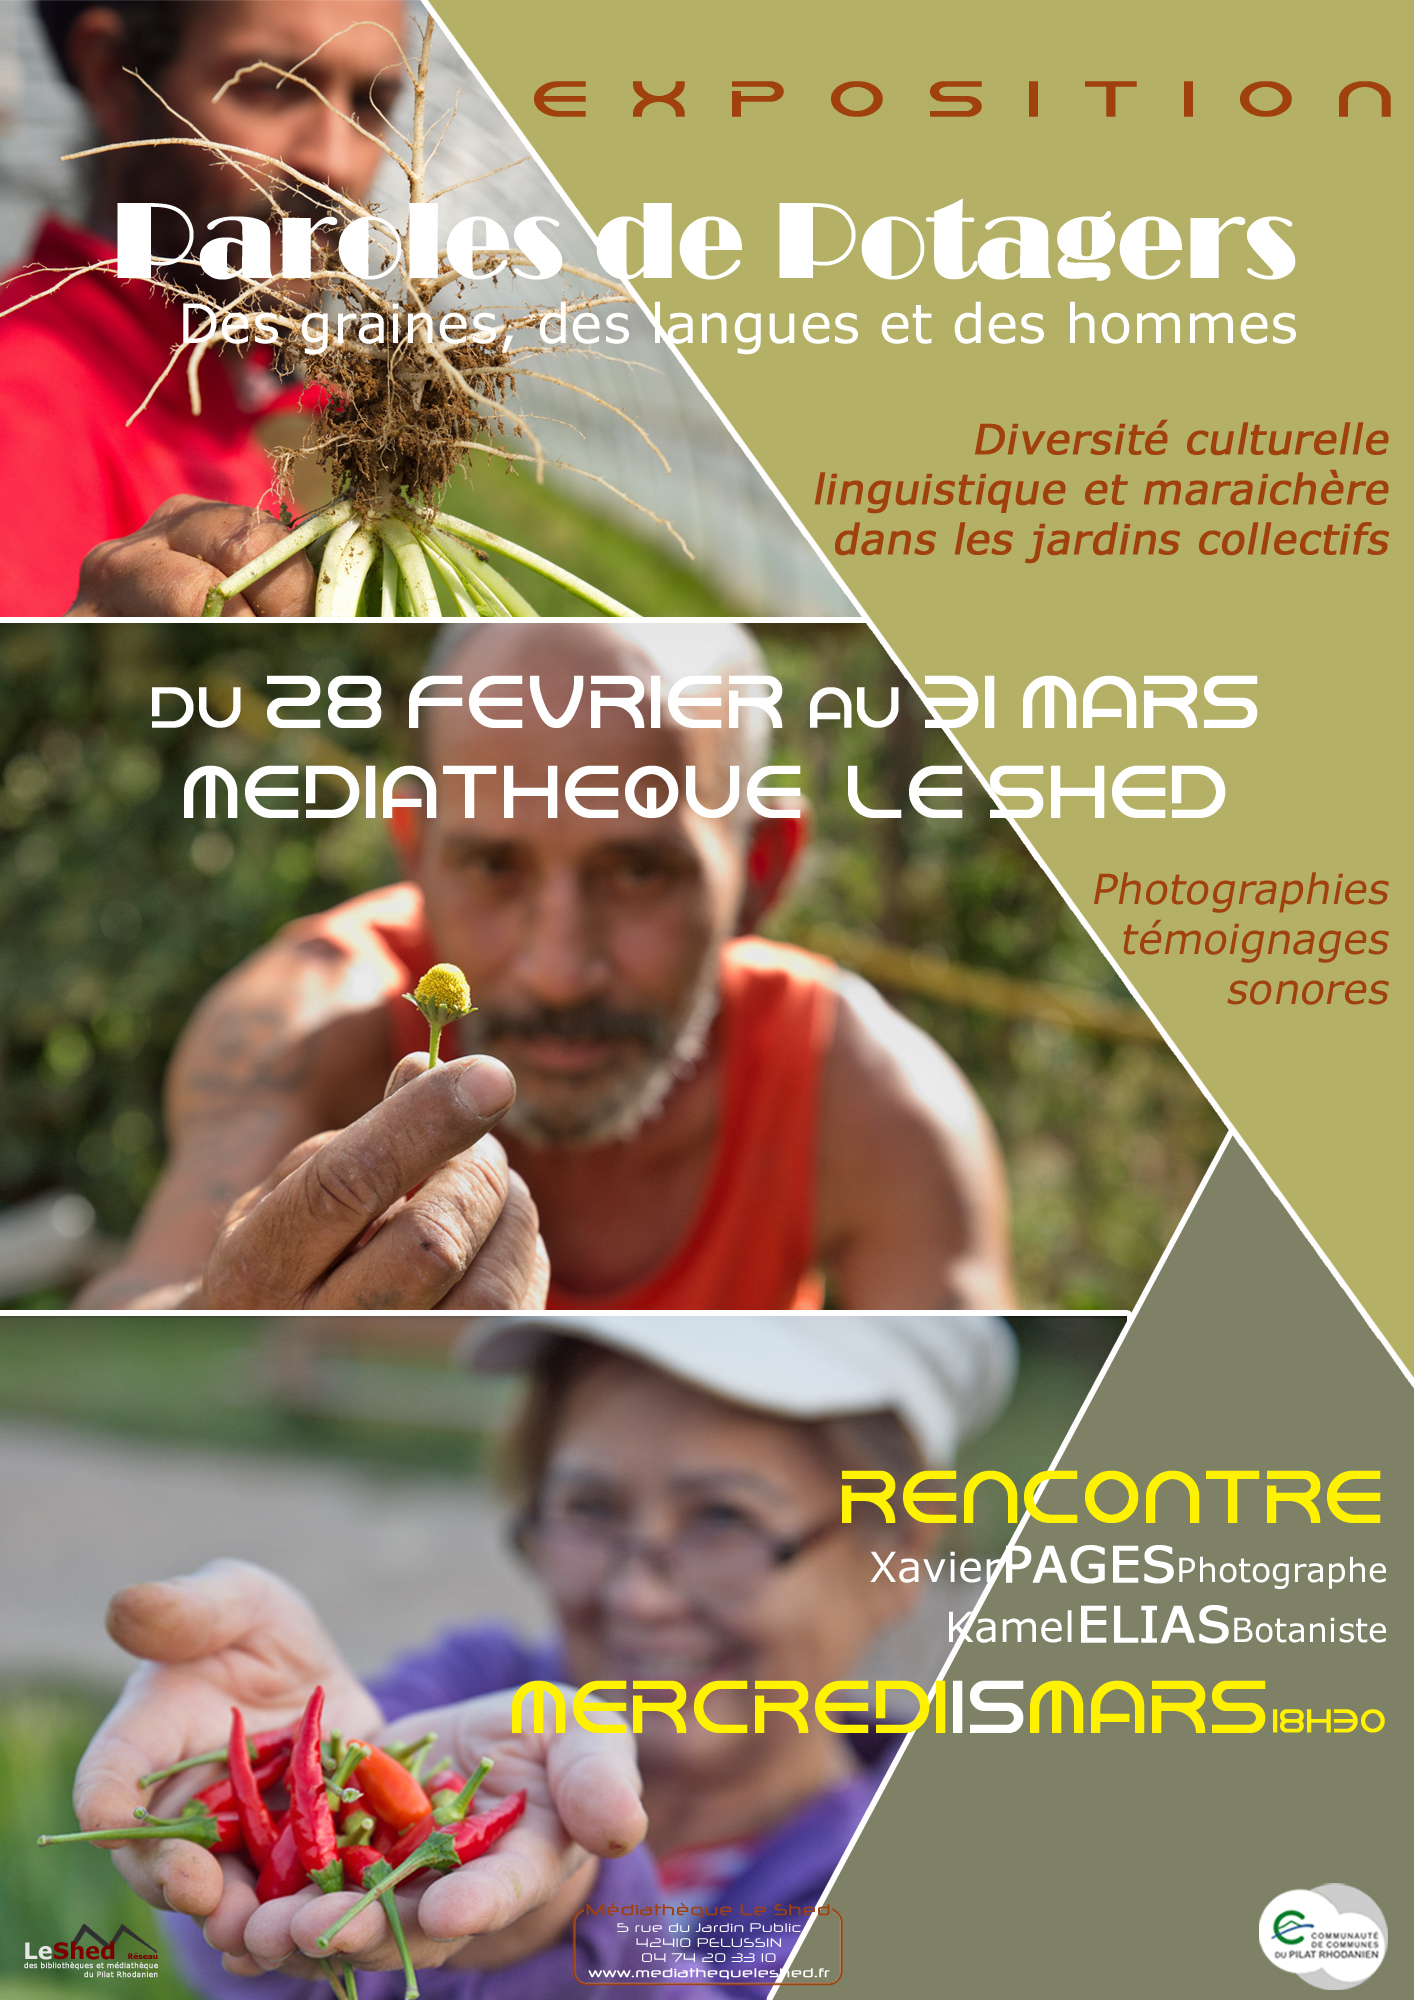 comparoles-de-potagers